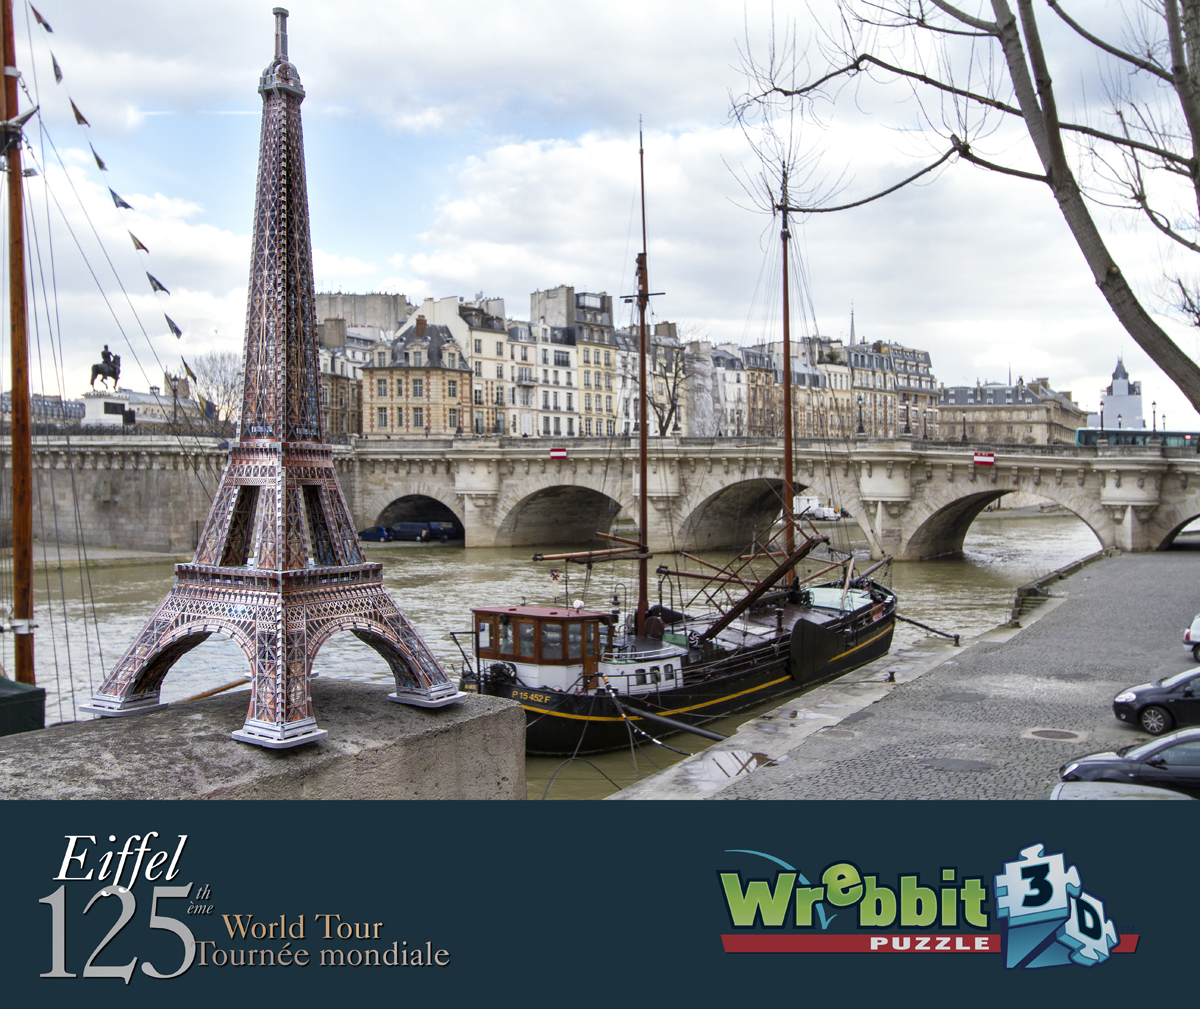 puzzle 3d paris la tour eiffel wrebbit 3d 2009 816 pi ces puzzles monuments planet 39 puzzles. Black Bedroom Furniture Sets. Home Design Ideas